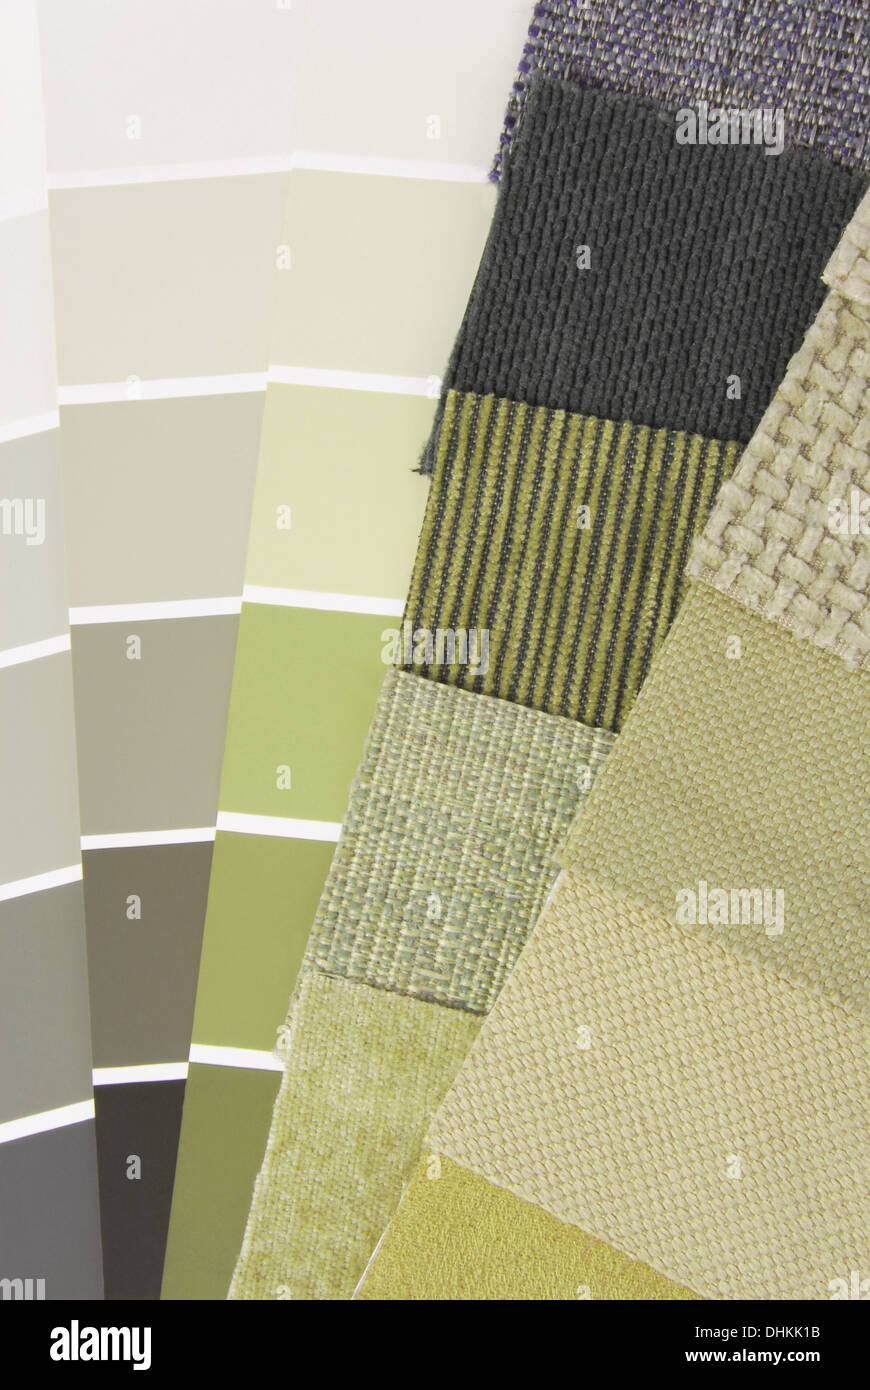 upholstery tapestry color selection for interior - Stock Image